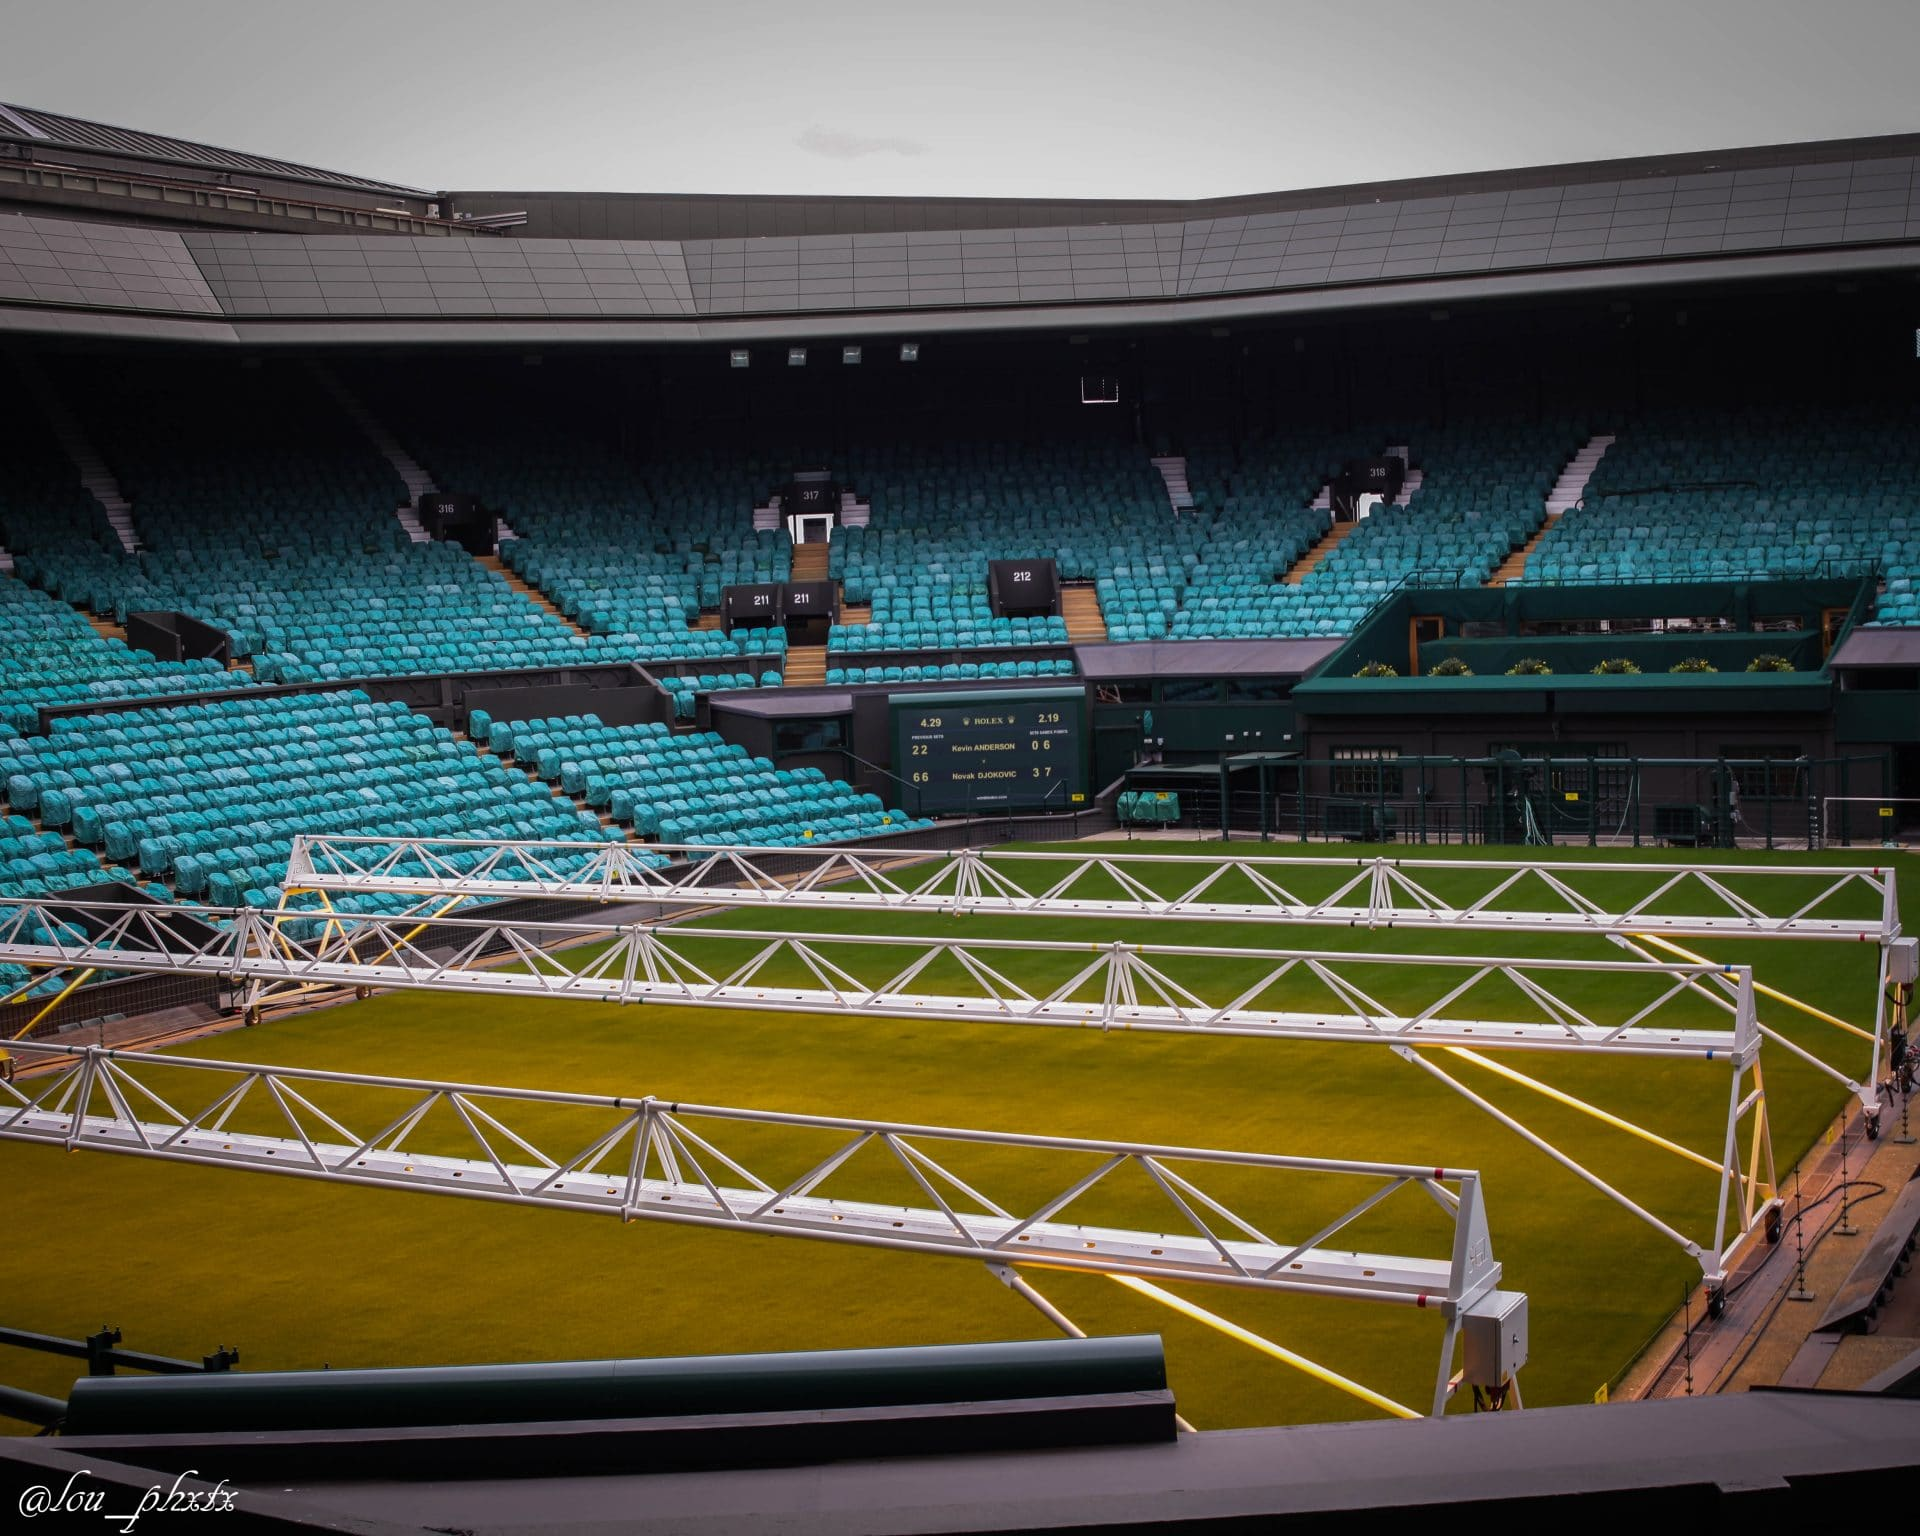 Wimbledon tennis court voyage scolaire angleterre